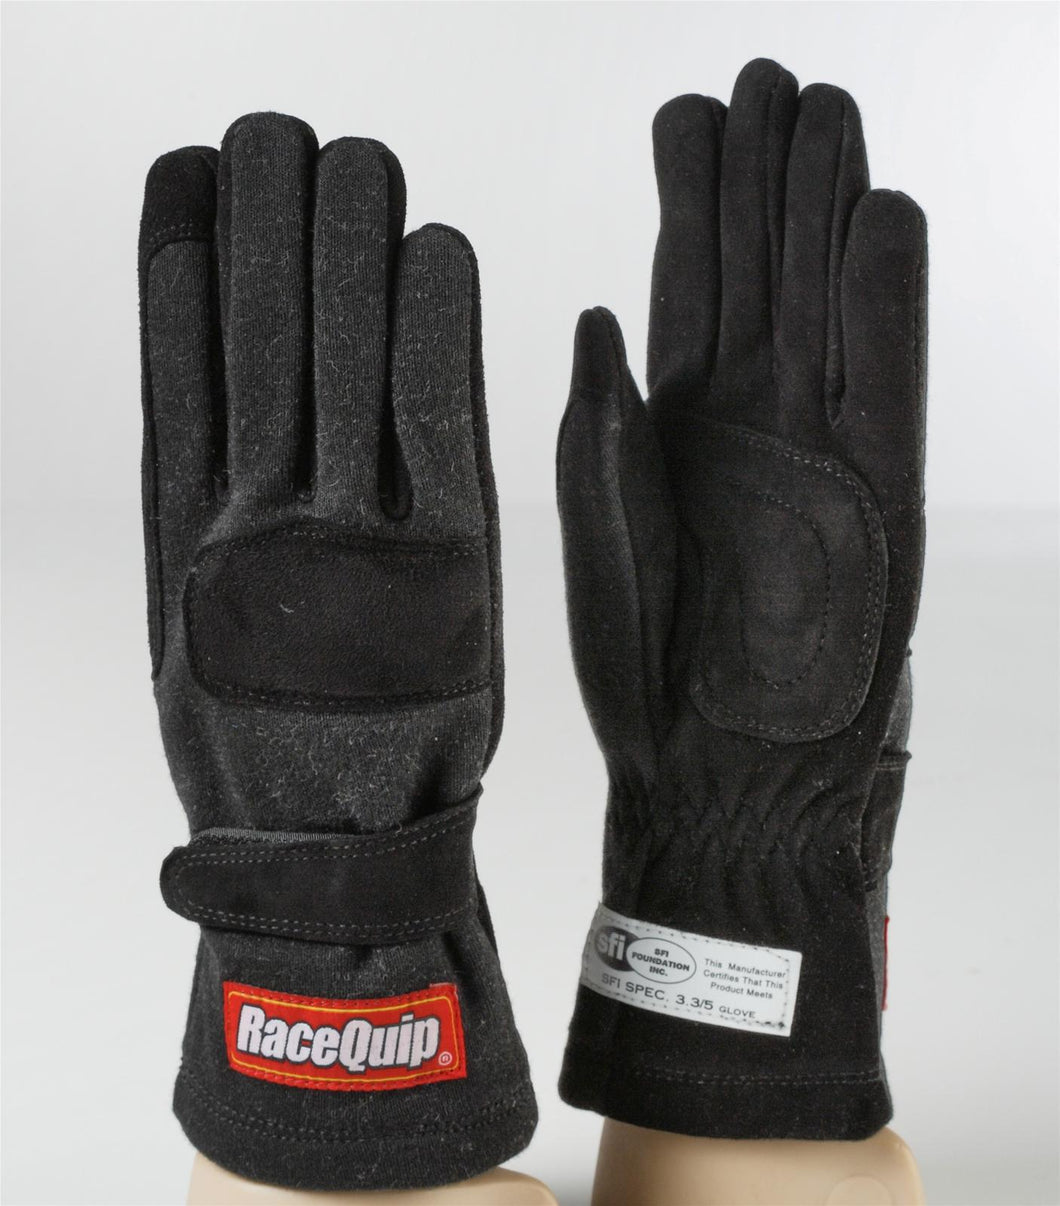 RaceQuip 355 Series Race Gloves 2 Layer Nomex [SFI 3.3/5] - Black/Red/Blue